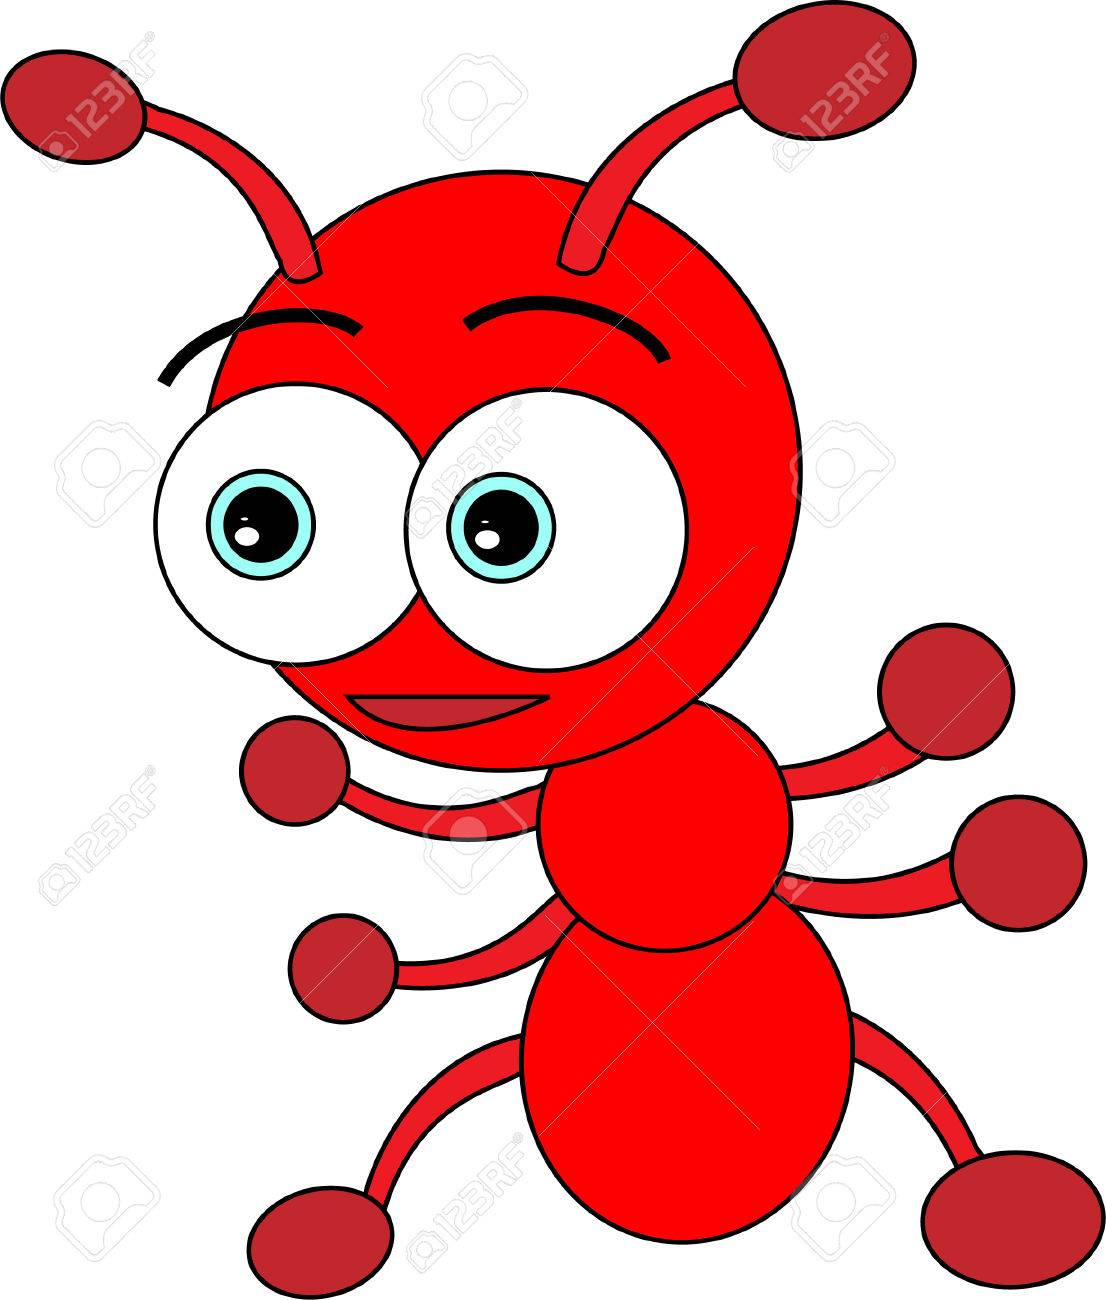 Uncategorized Ant Images For Kids cute little red ant royalty free cliparts vectors and stock vector 4167750